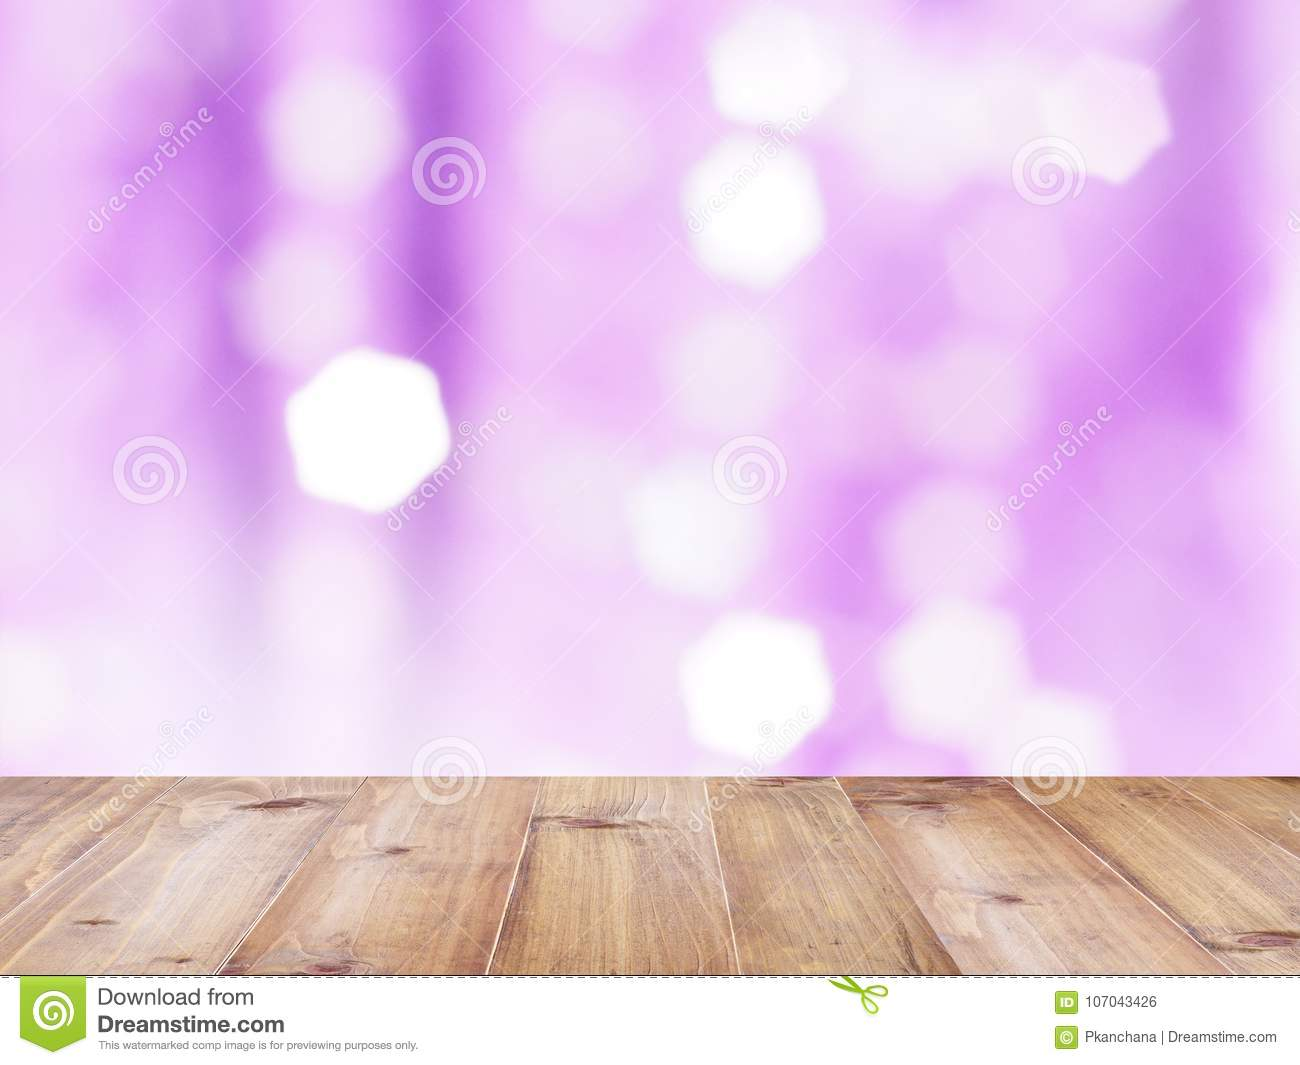 Wooden table top over violet abstract blured background